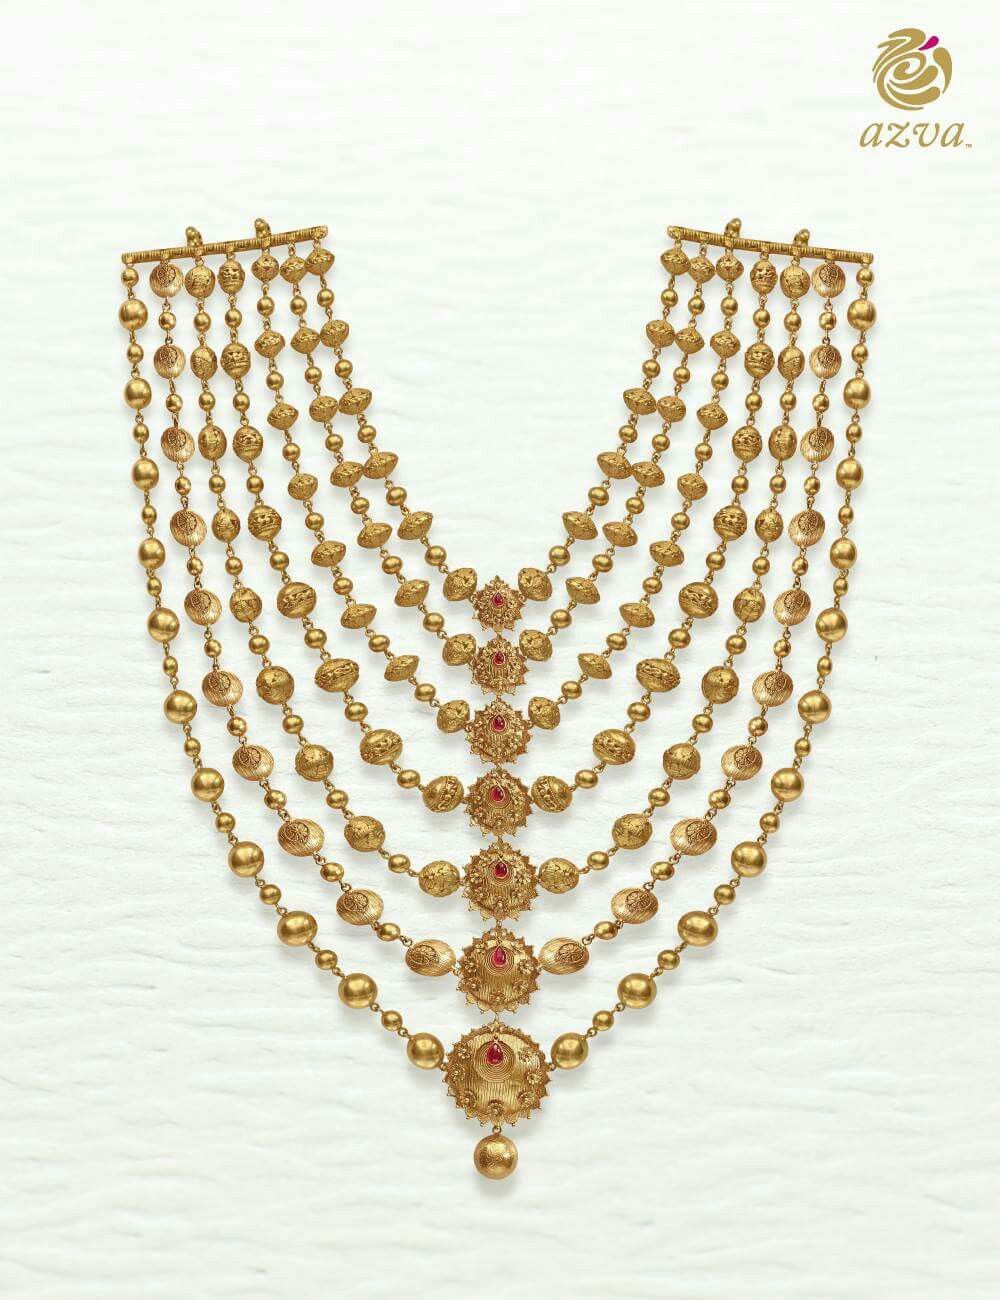 Gold rani haar pictures to pin on pinterest - Azva Gold Haar With Seven Medallions For Your Wedding Day Goldjewellery Luxury